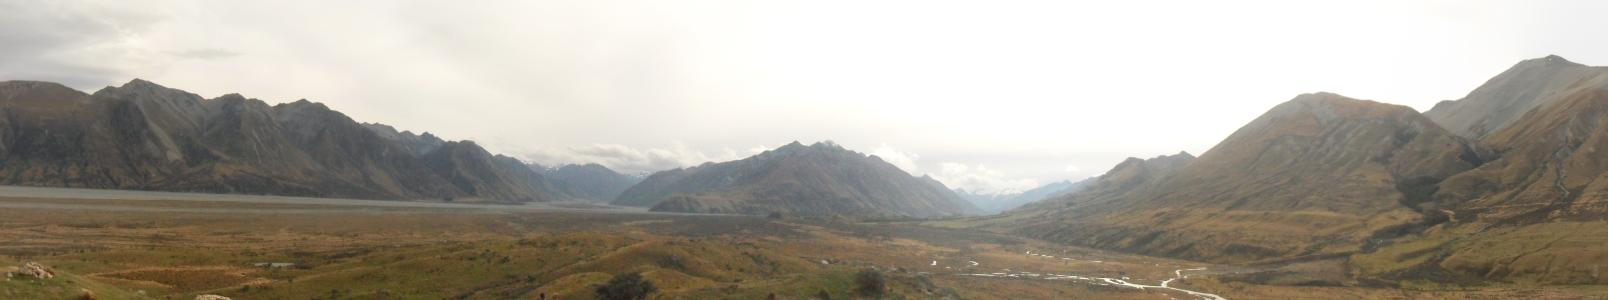 Name: View from Edoras NZ Camera make: SAMSUNG Model: SAMSUNG Software: